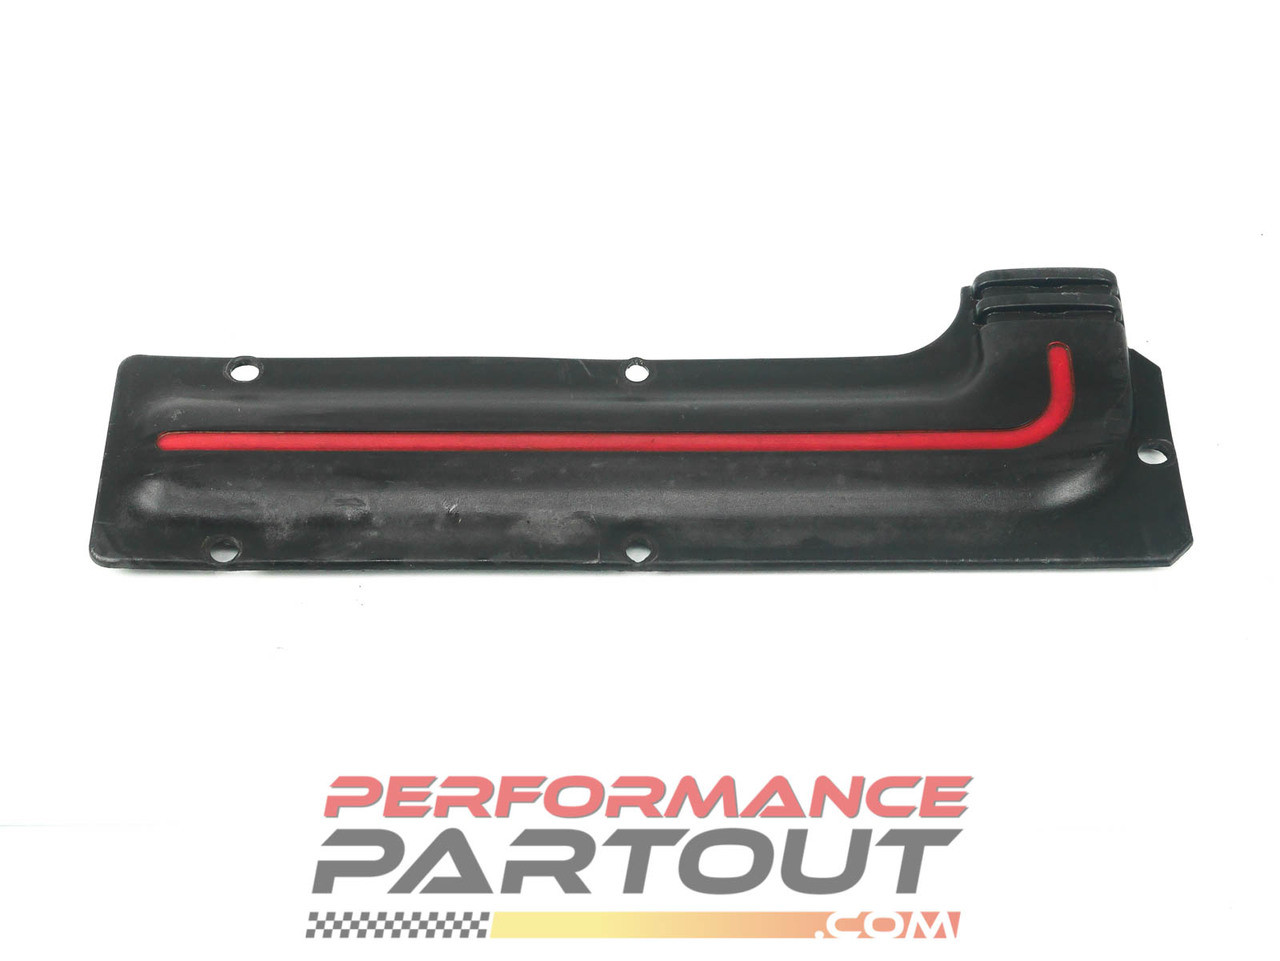 Spark plug wire cover 4g63 90-99